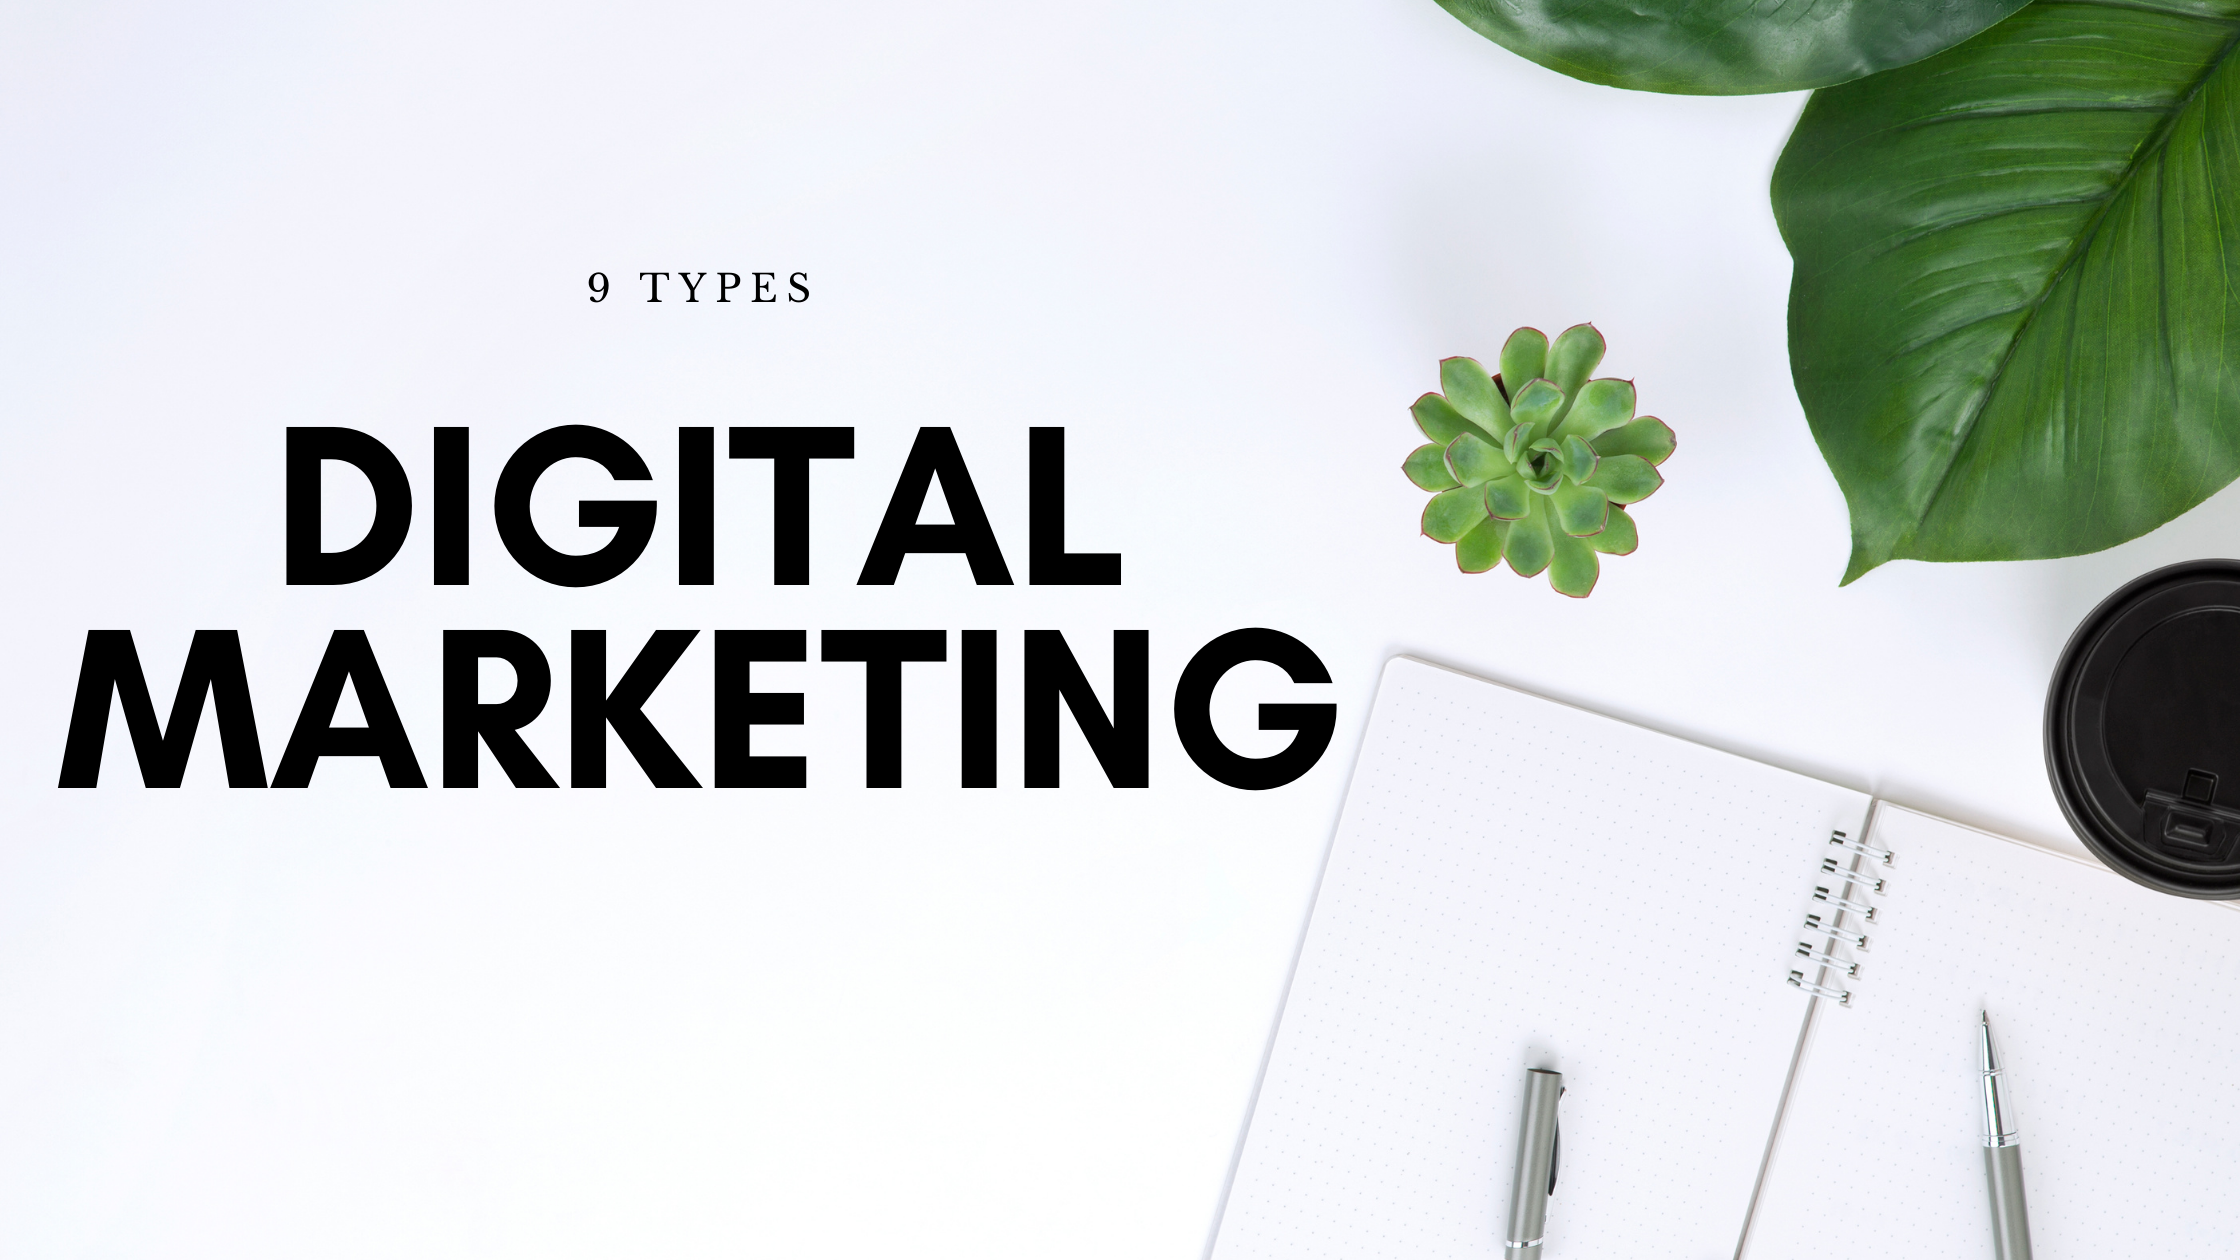 9 Types of Digital Marketing You Should be Familiar With